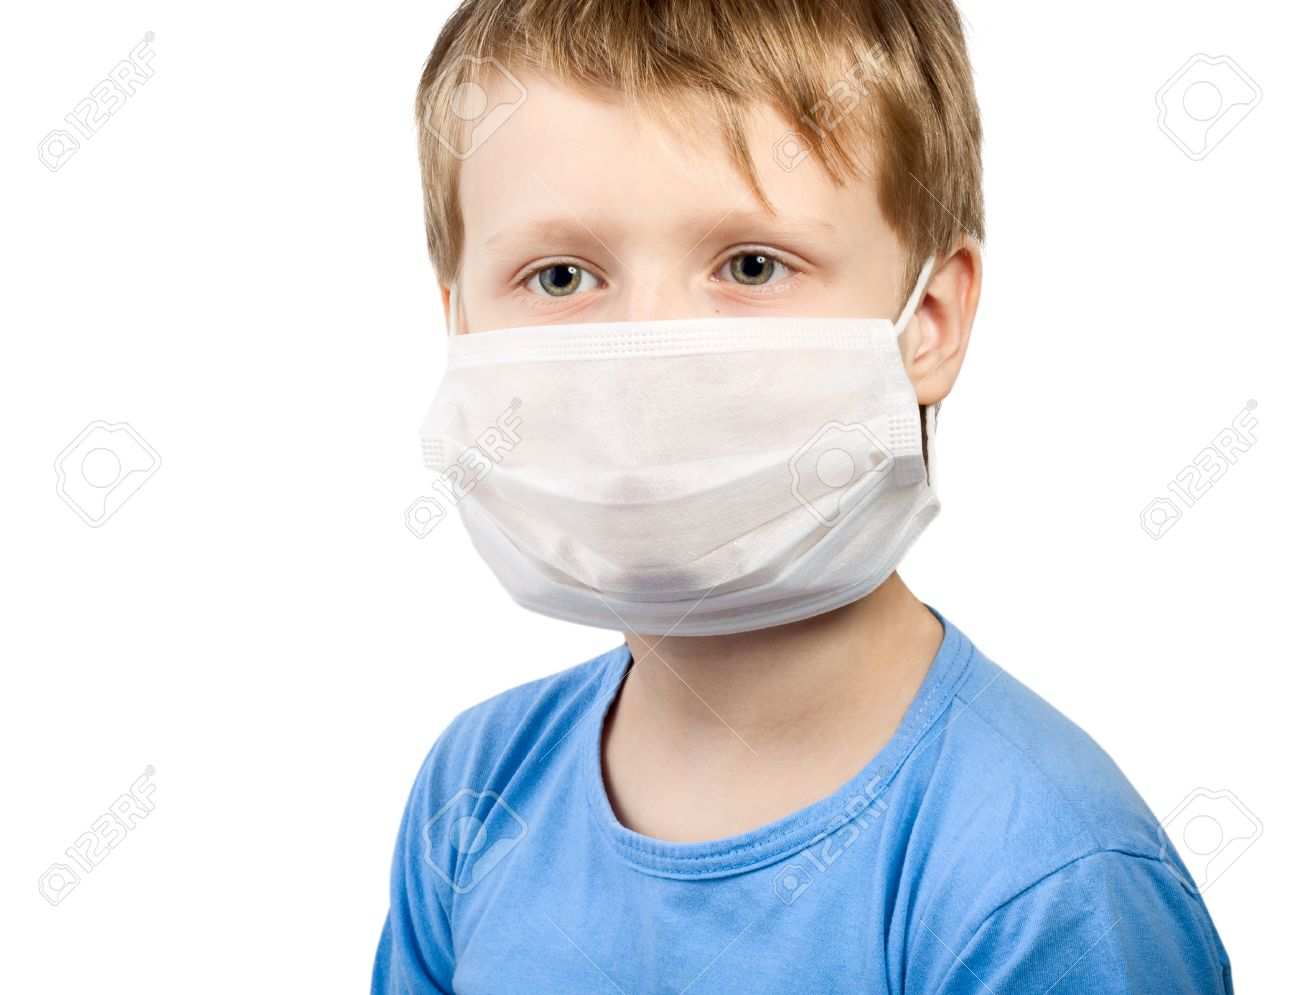 child surgical mask